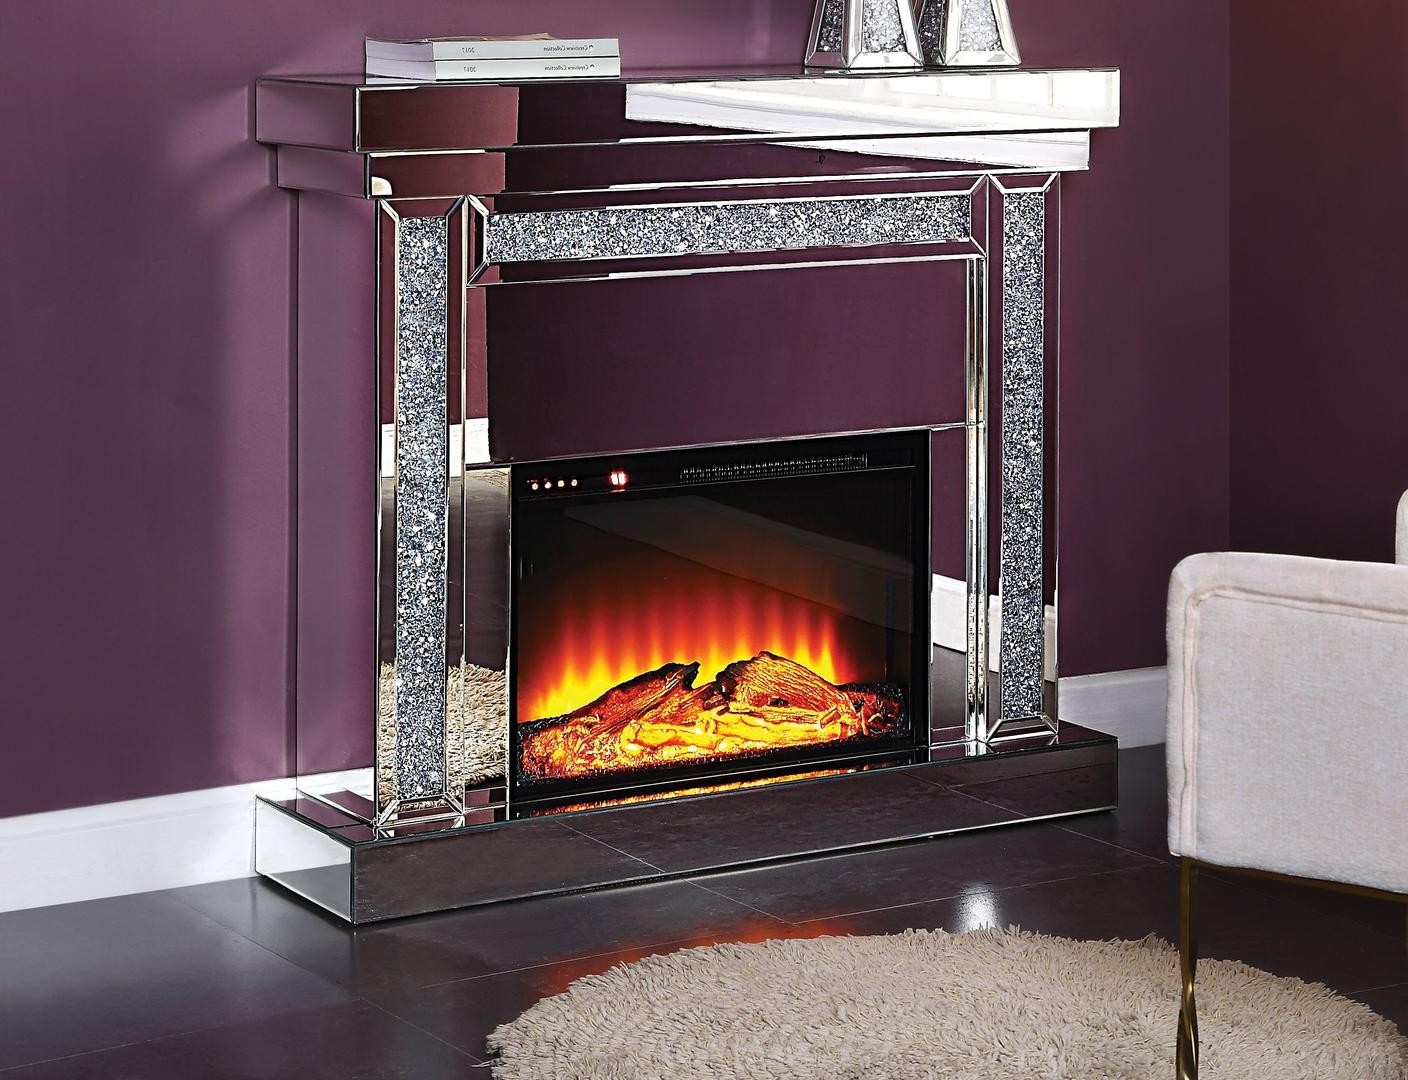 noralie beveled glass mirrored faux diamond fireplace fireplaces accent table occasional bedroom chairs furniture for entrance foyer modern rectangular coffee brass end new home